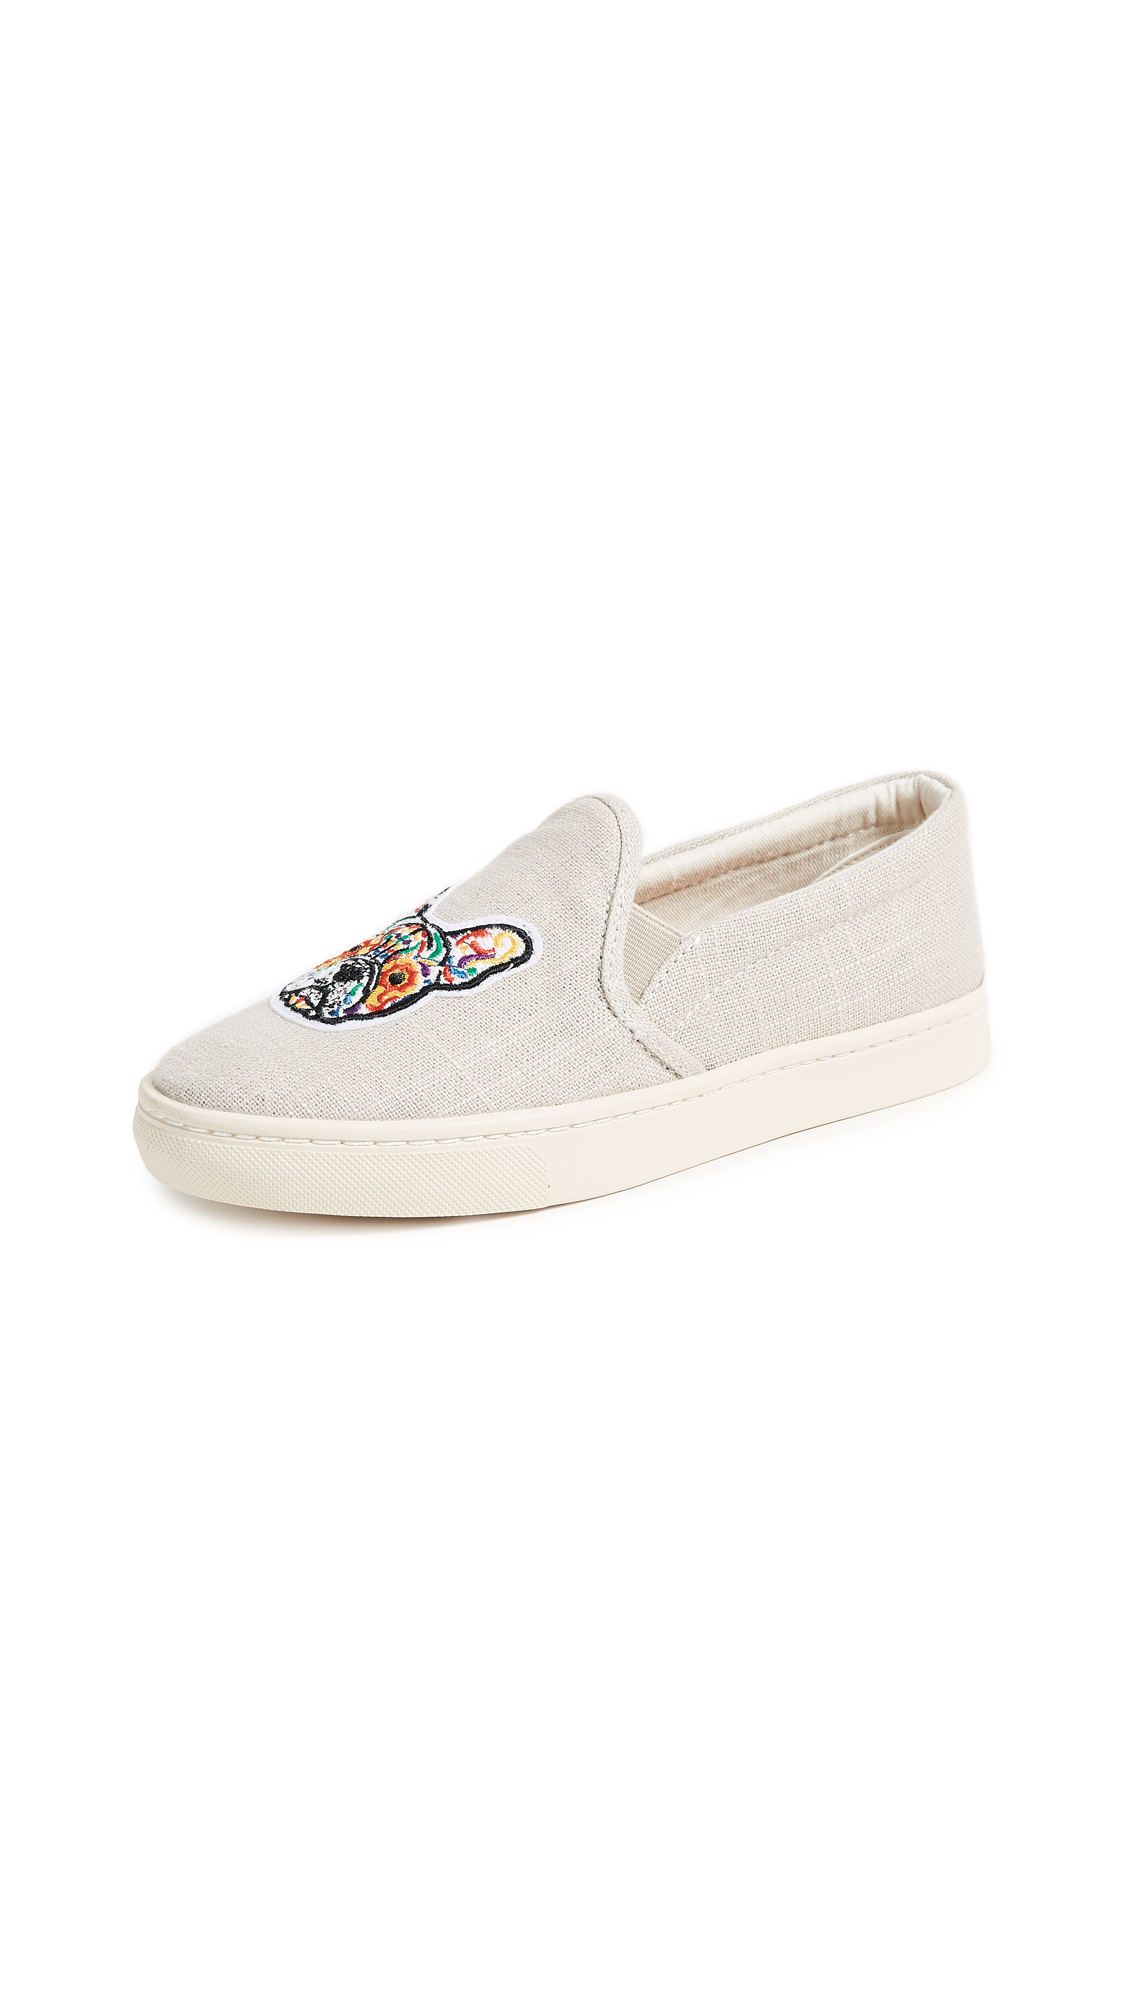 Soludos Frenchie Slip On Sneakers